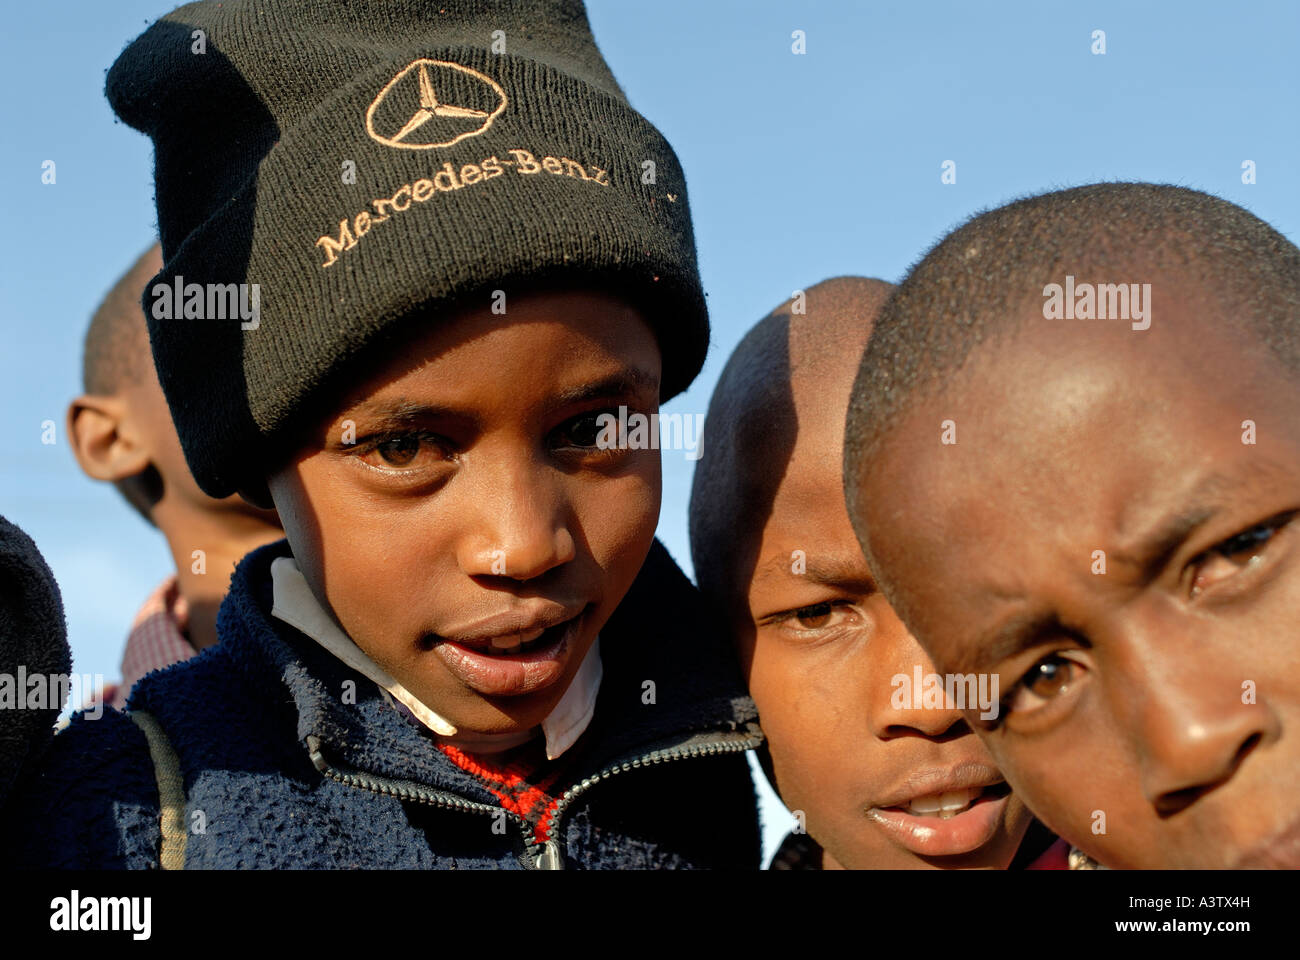 Kenyan boys with Mercedes Benz hat in Nyahururu Kenya Stock Photo ... c2d0a0779a6